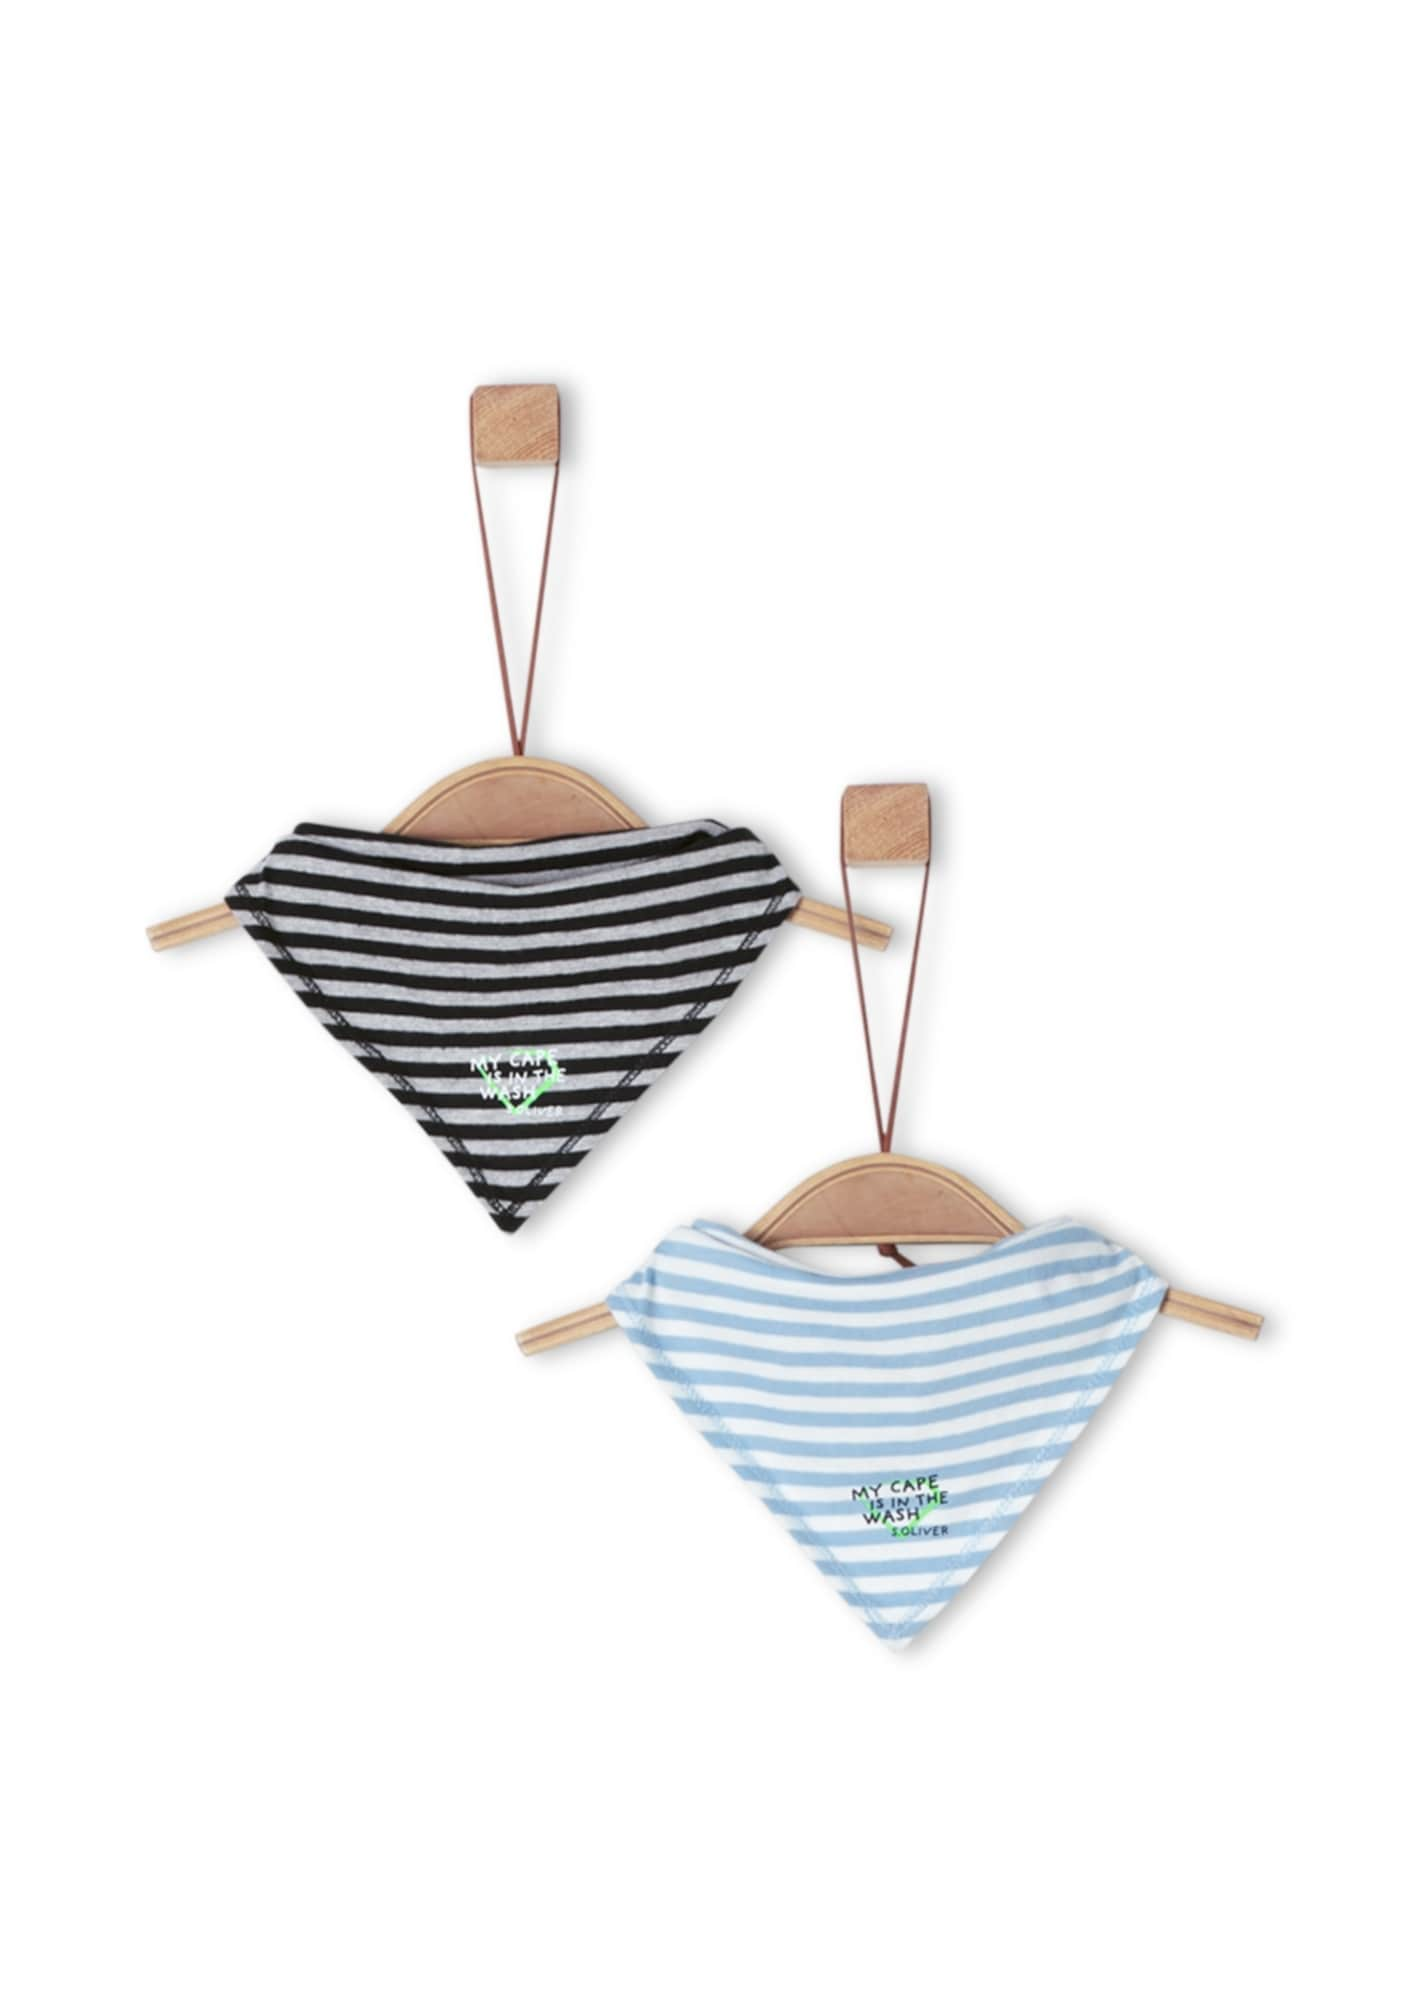 Babyaccessoires - Babytuch - Onlineshop ABOUT YOU